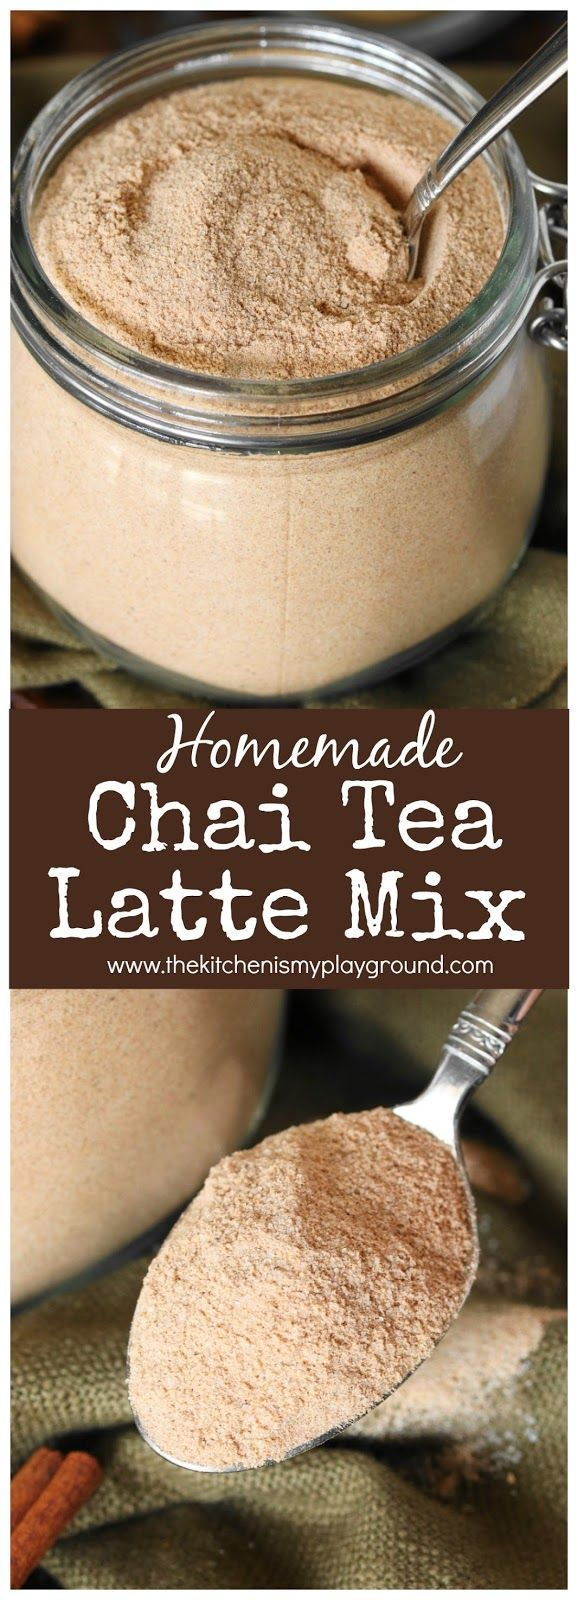 Home is where the Food Is:  Homemade Chai Tea Latte Mix pin image.